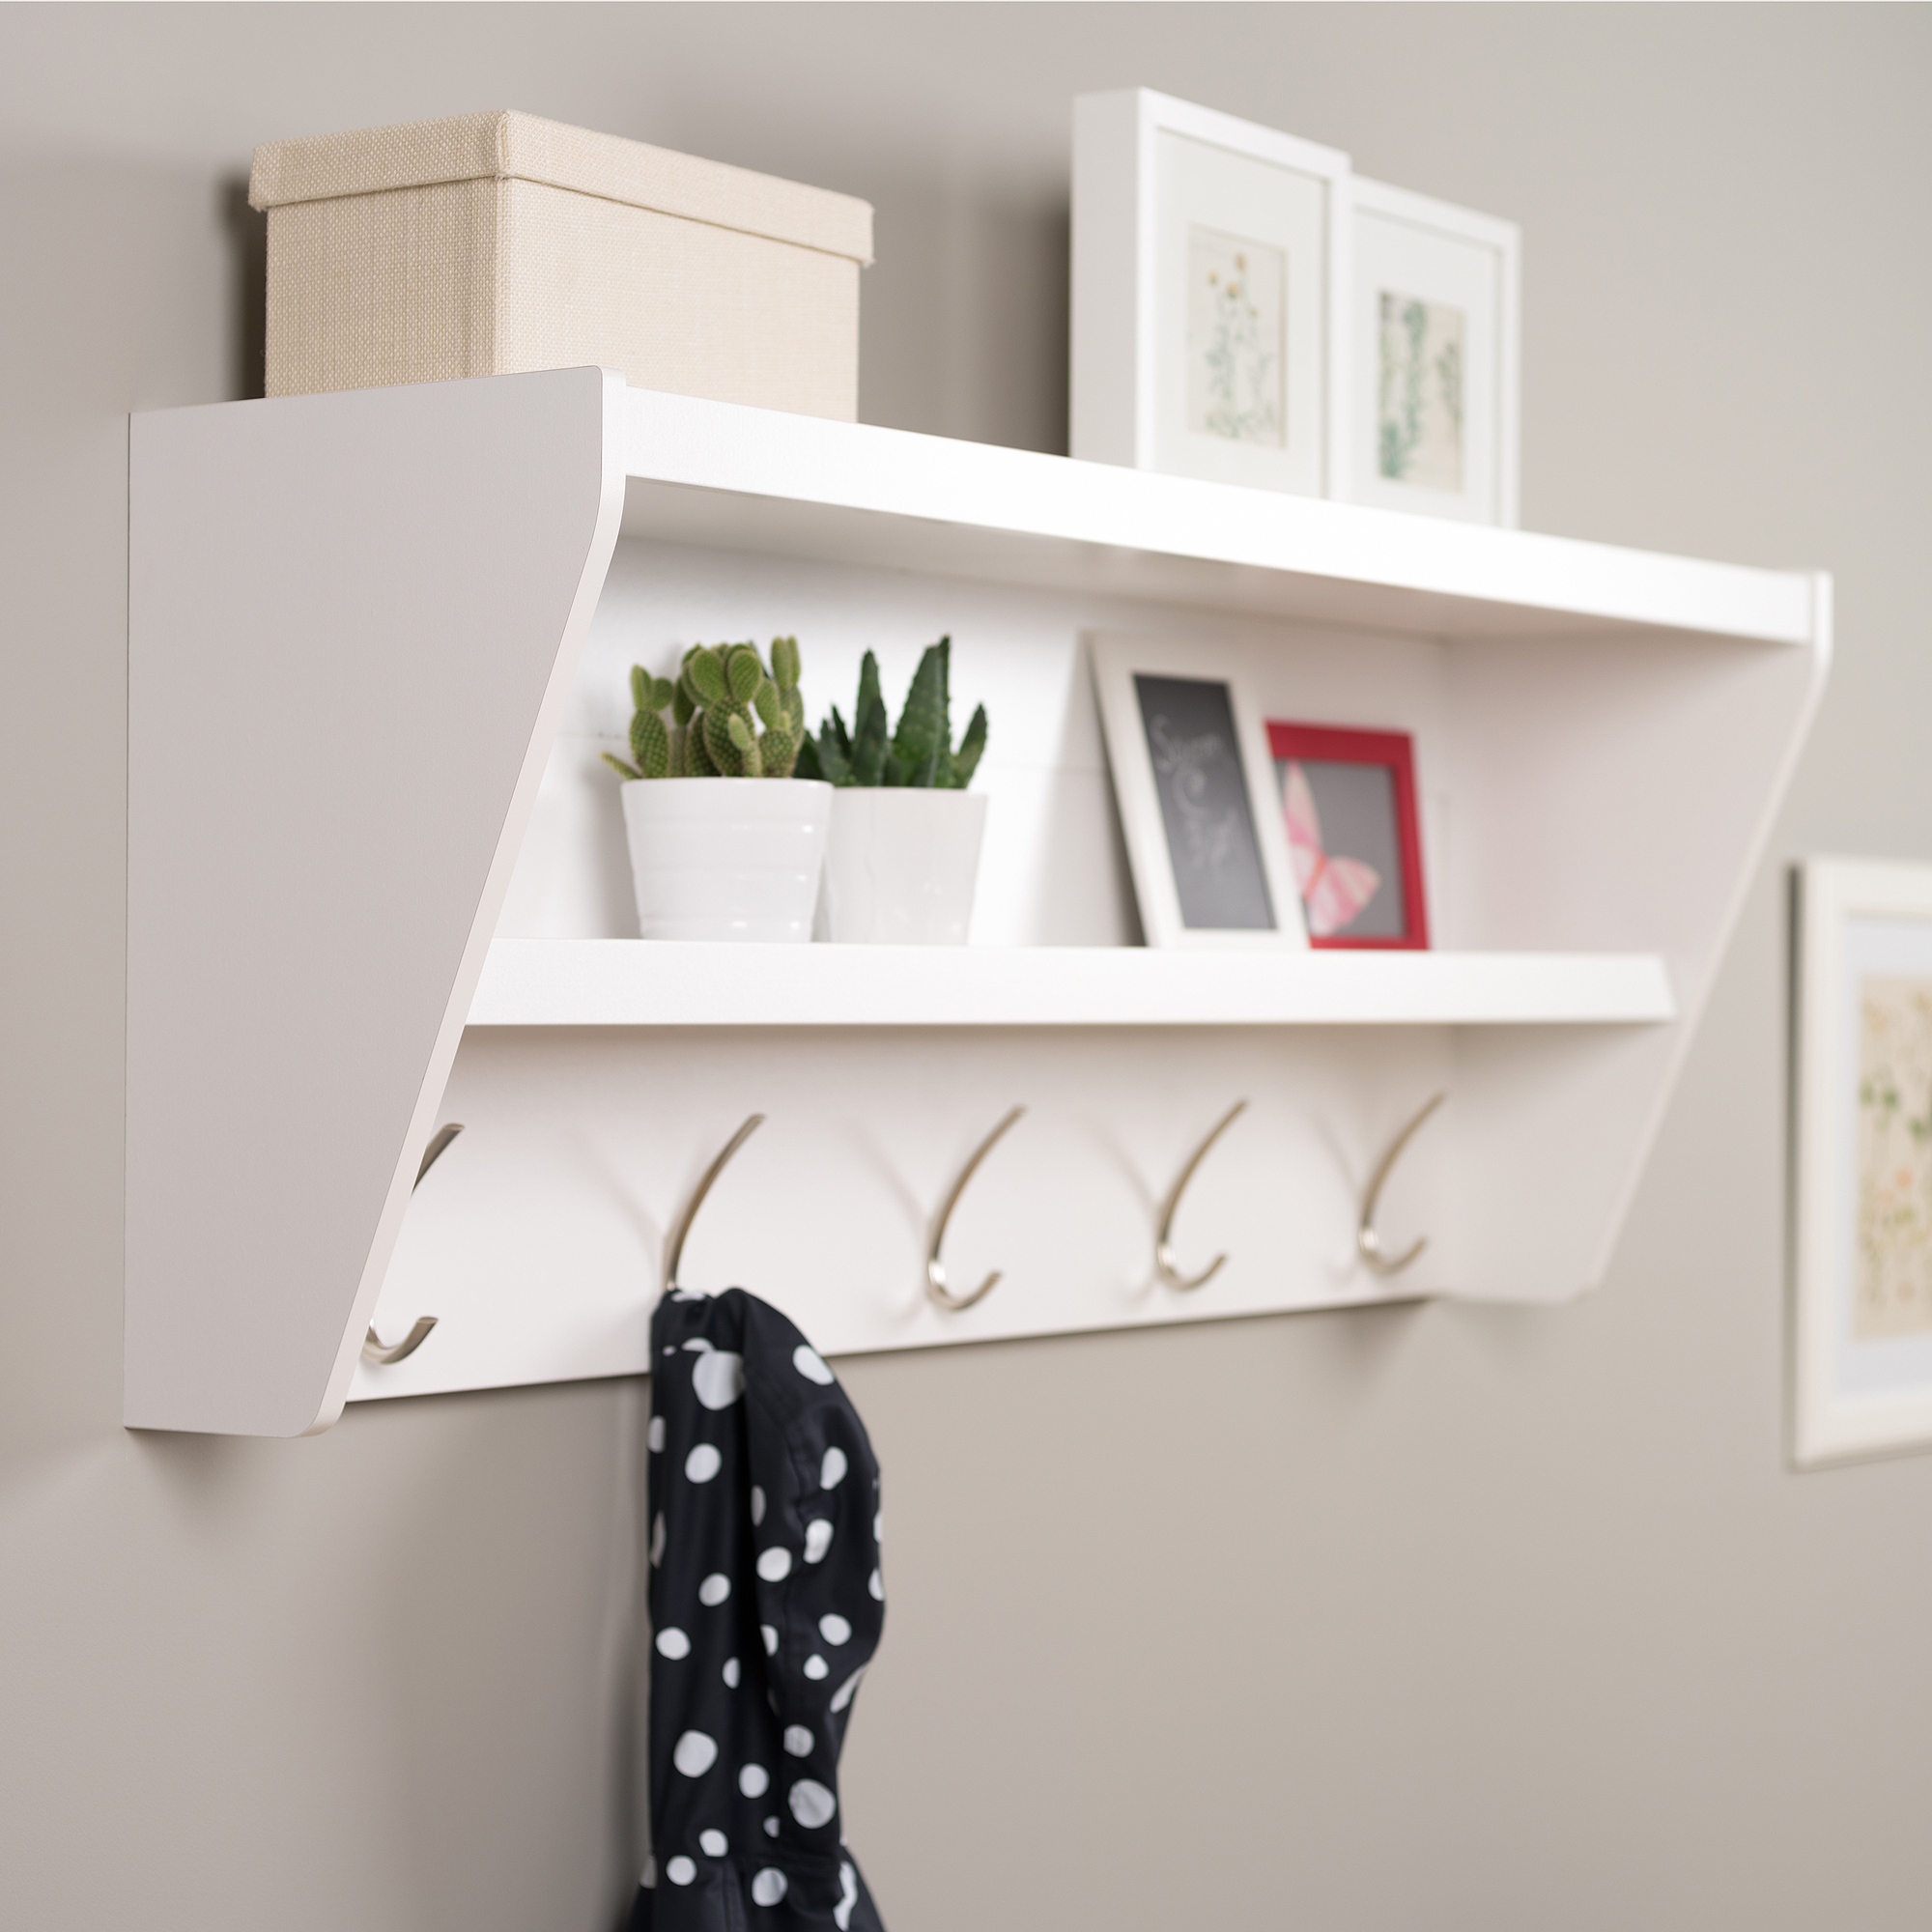 prepac floating entryway shelf and coat rack wooden wall hooks velcro removable adhesive hanging strips office racks mounted breakfast bar bracket supports lack ikea shelves thin